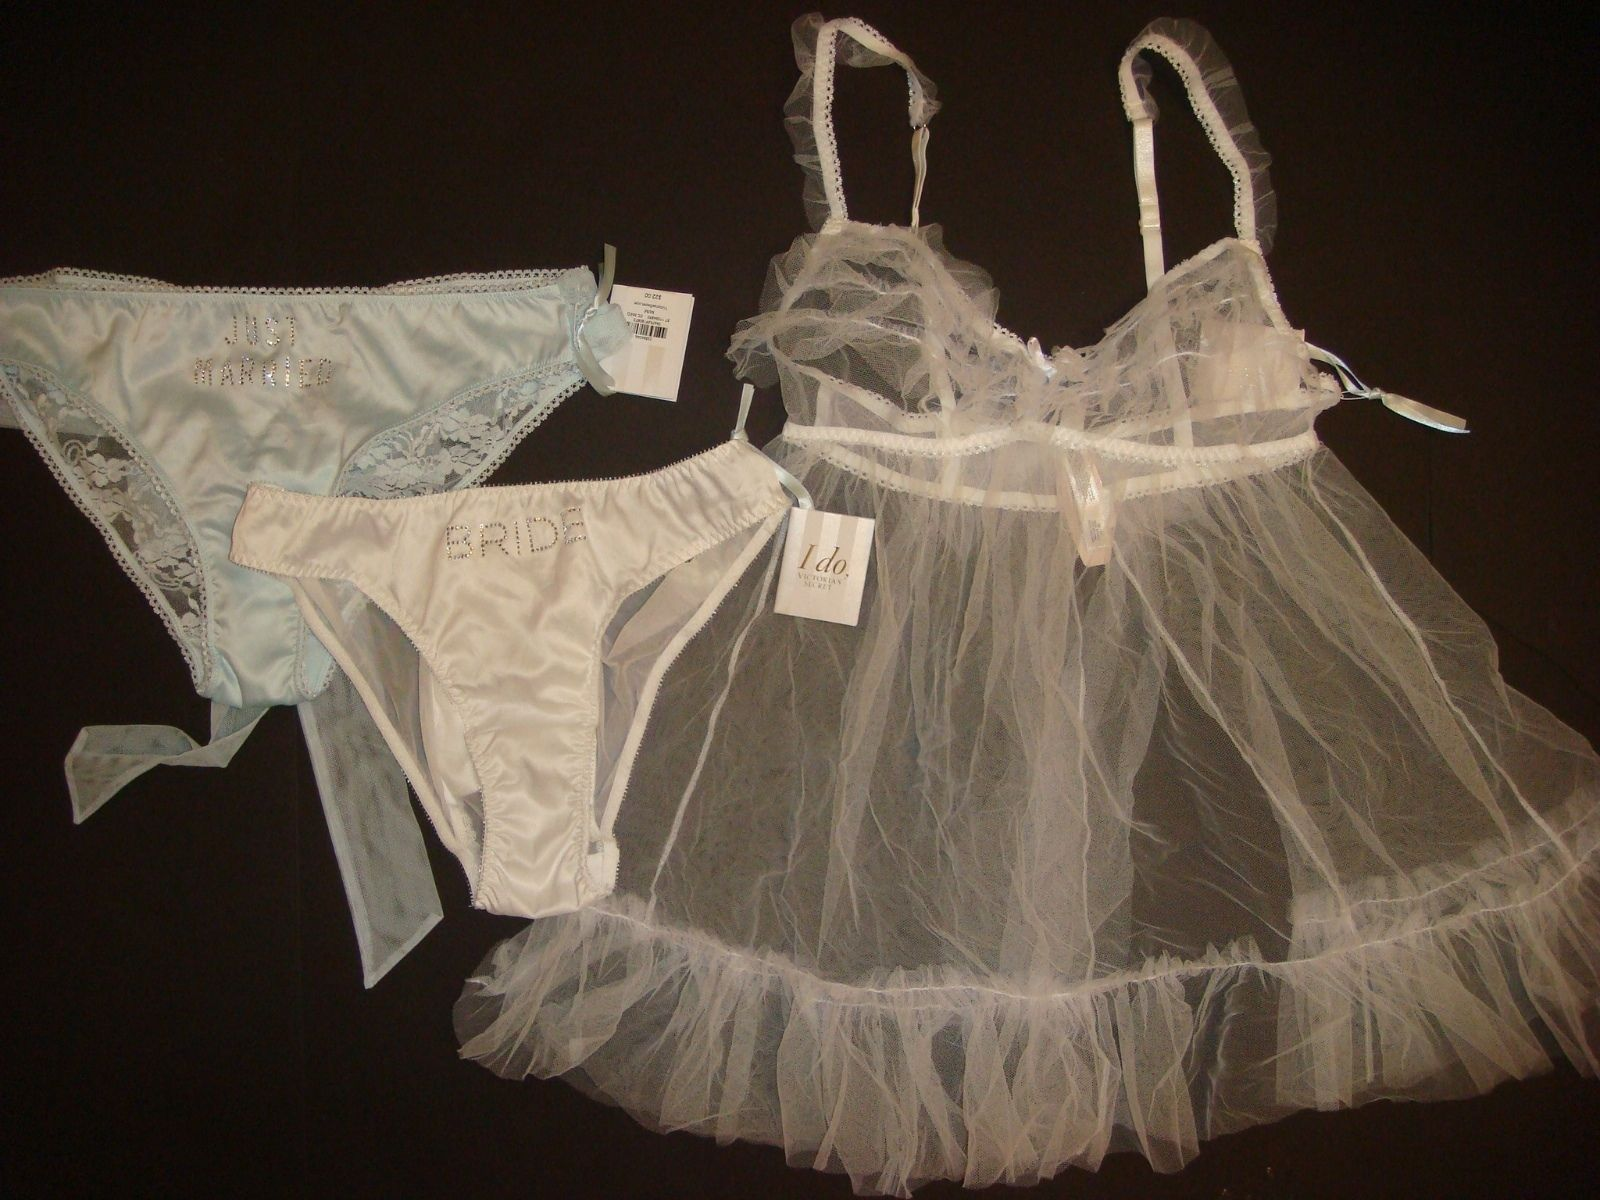 80daeeb66d S l1600. S l1600. Previous. Victoria s Secret M BABYDOLL+panty crystallized  BLUE white Just married BRIDAL